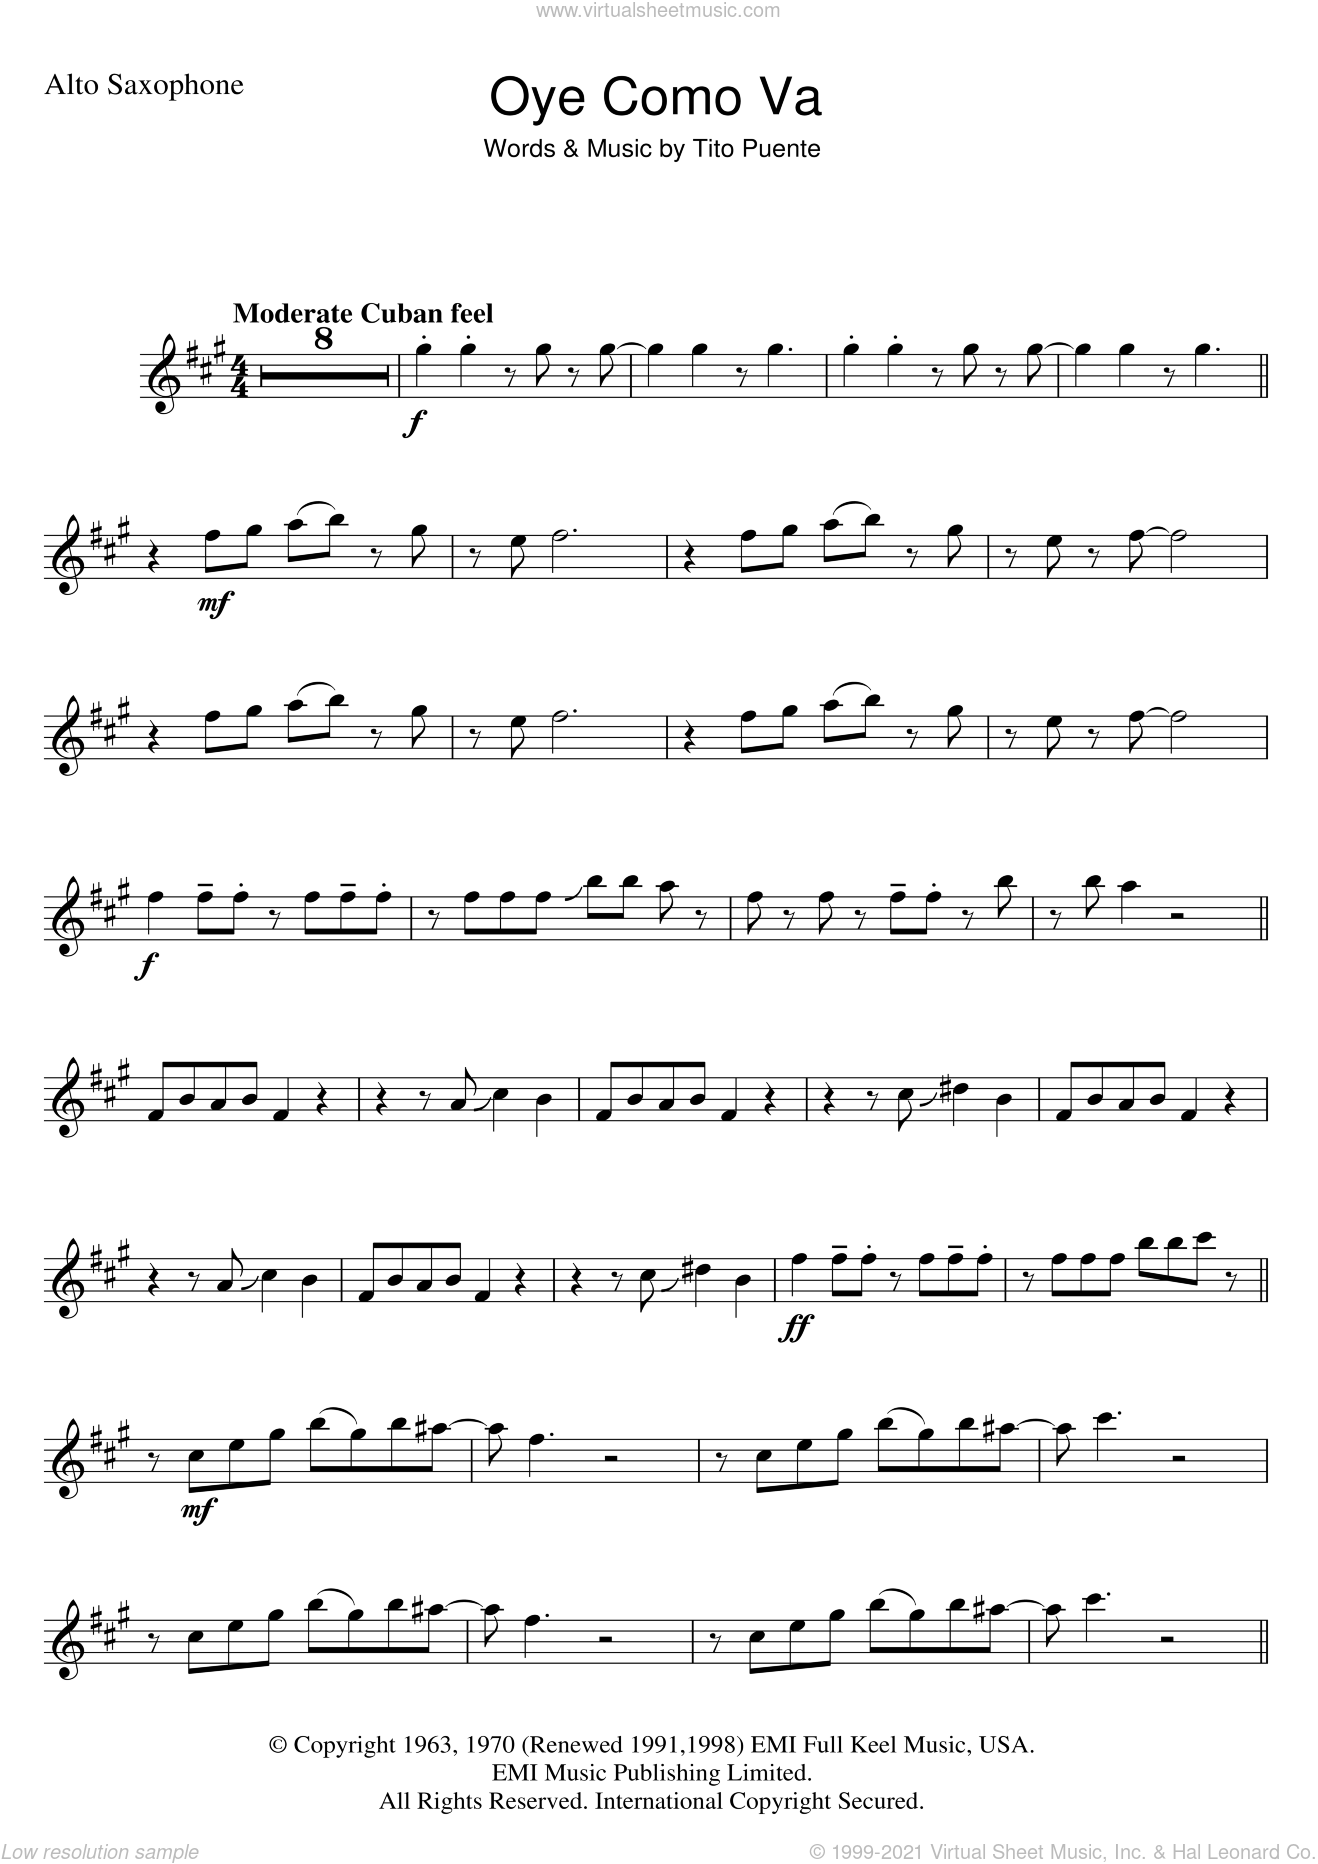 Oye Como Va sheet music for alto saxophone solo by Tito Puente and Carlos Santana, intermediate skill level